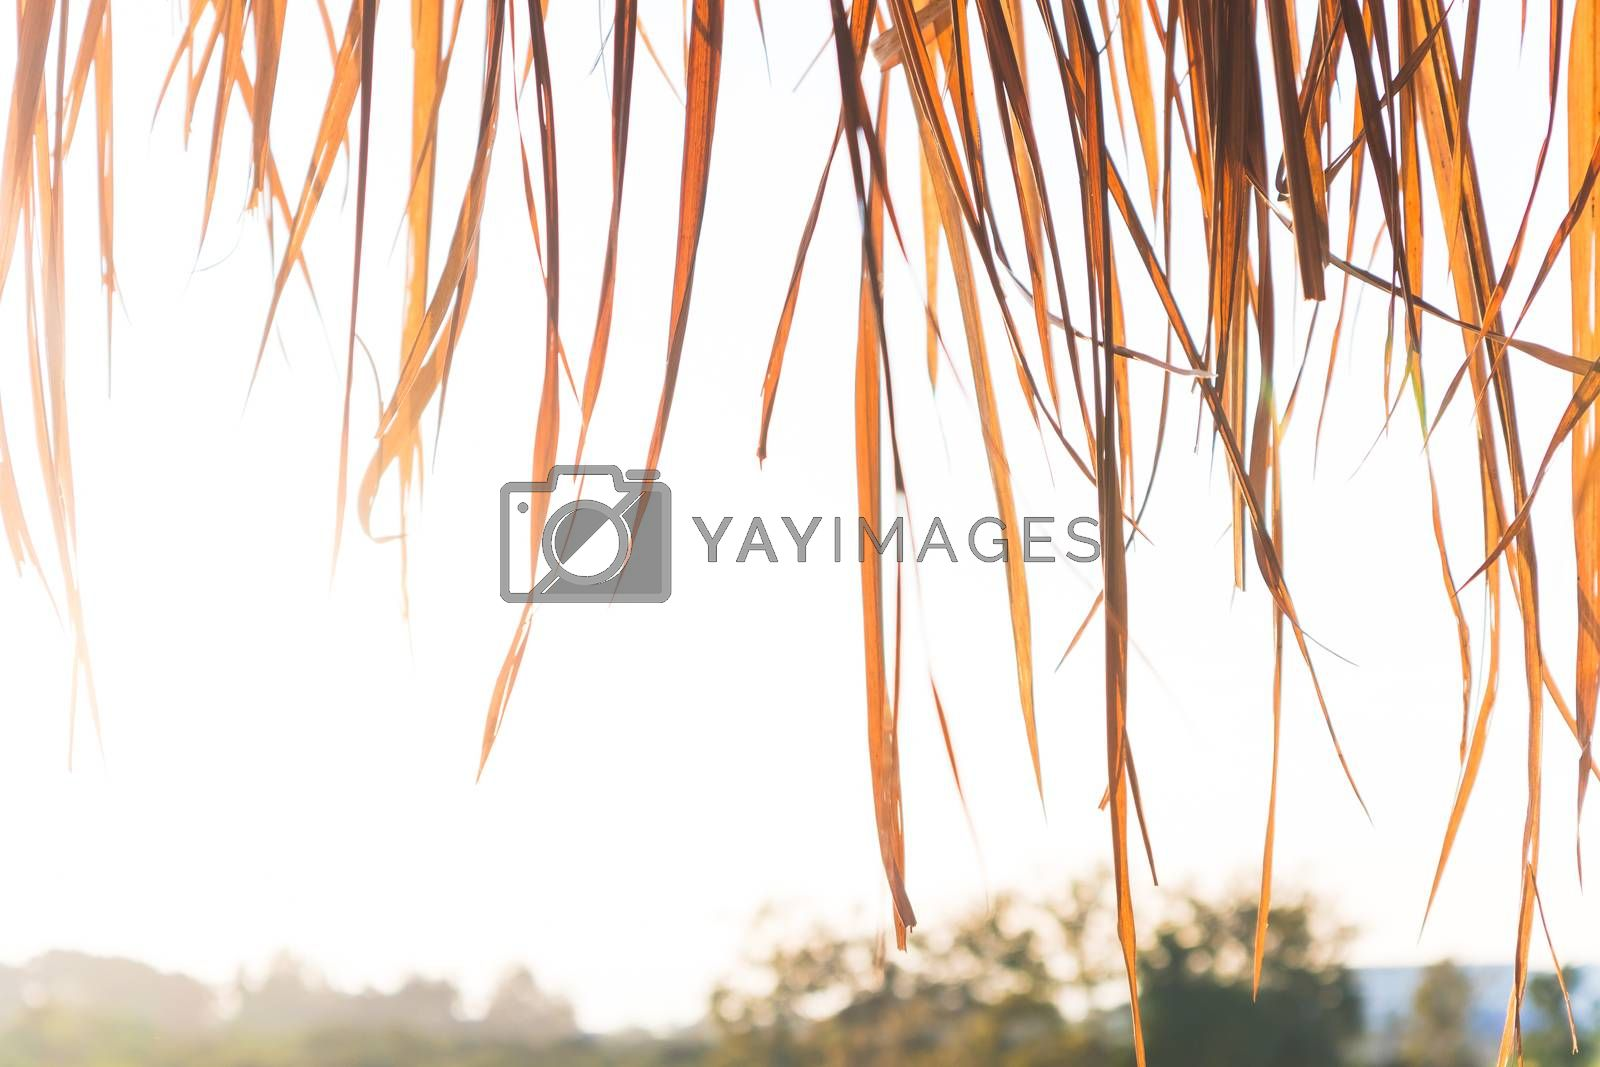 Roof made from dry grass on country farm background by Saeteaw